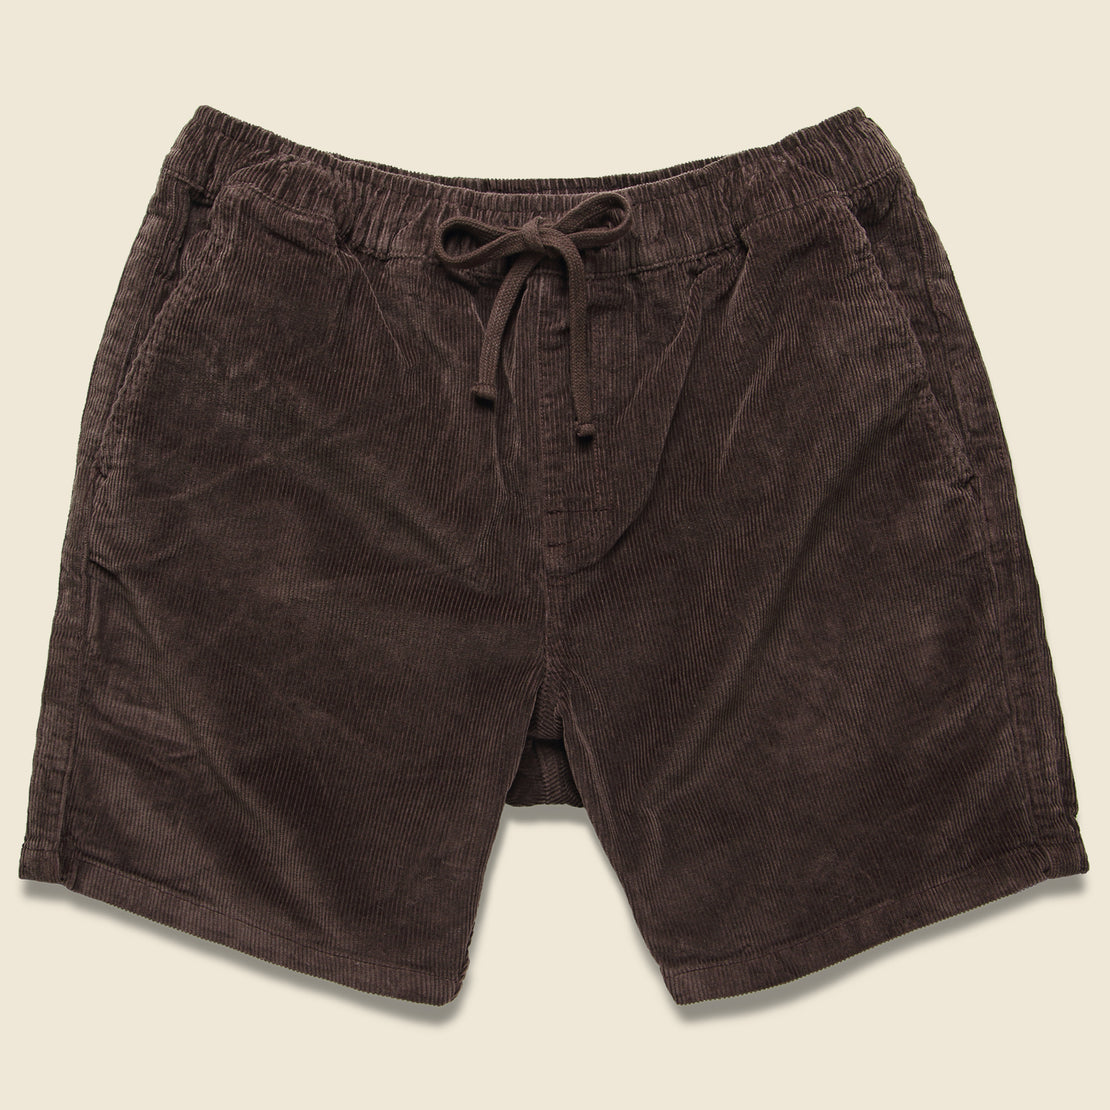 Katin Kord Short - Walnut